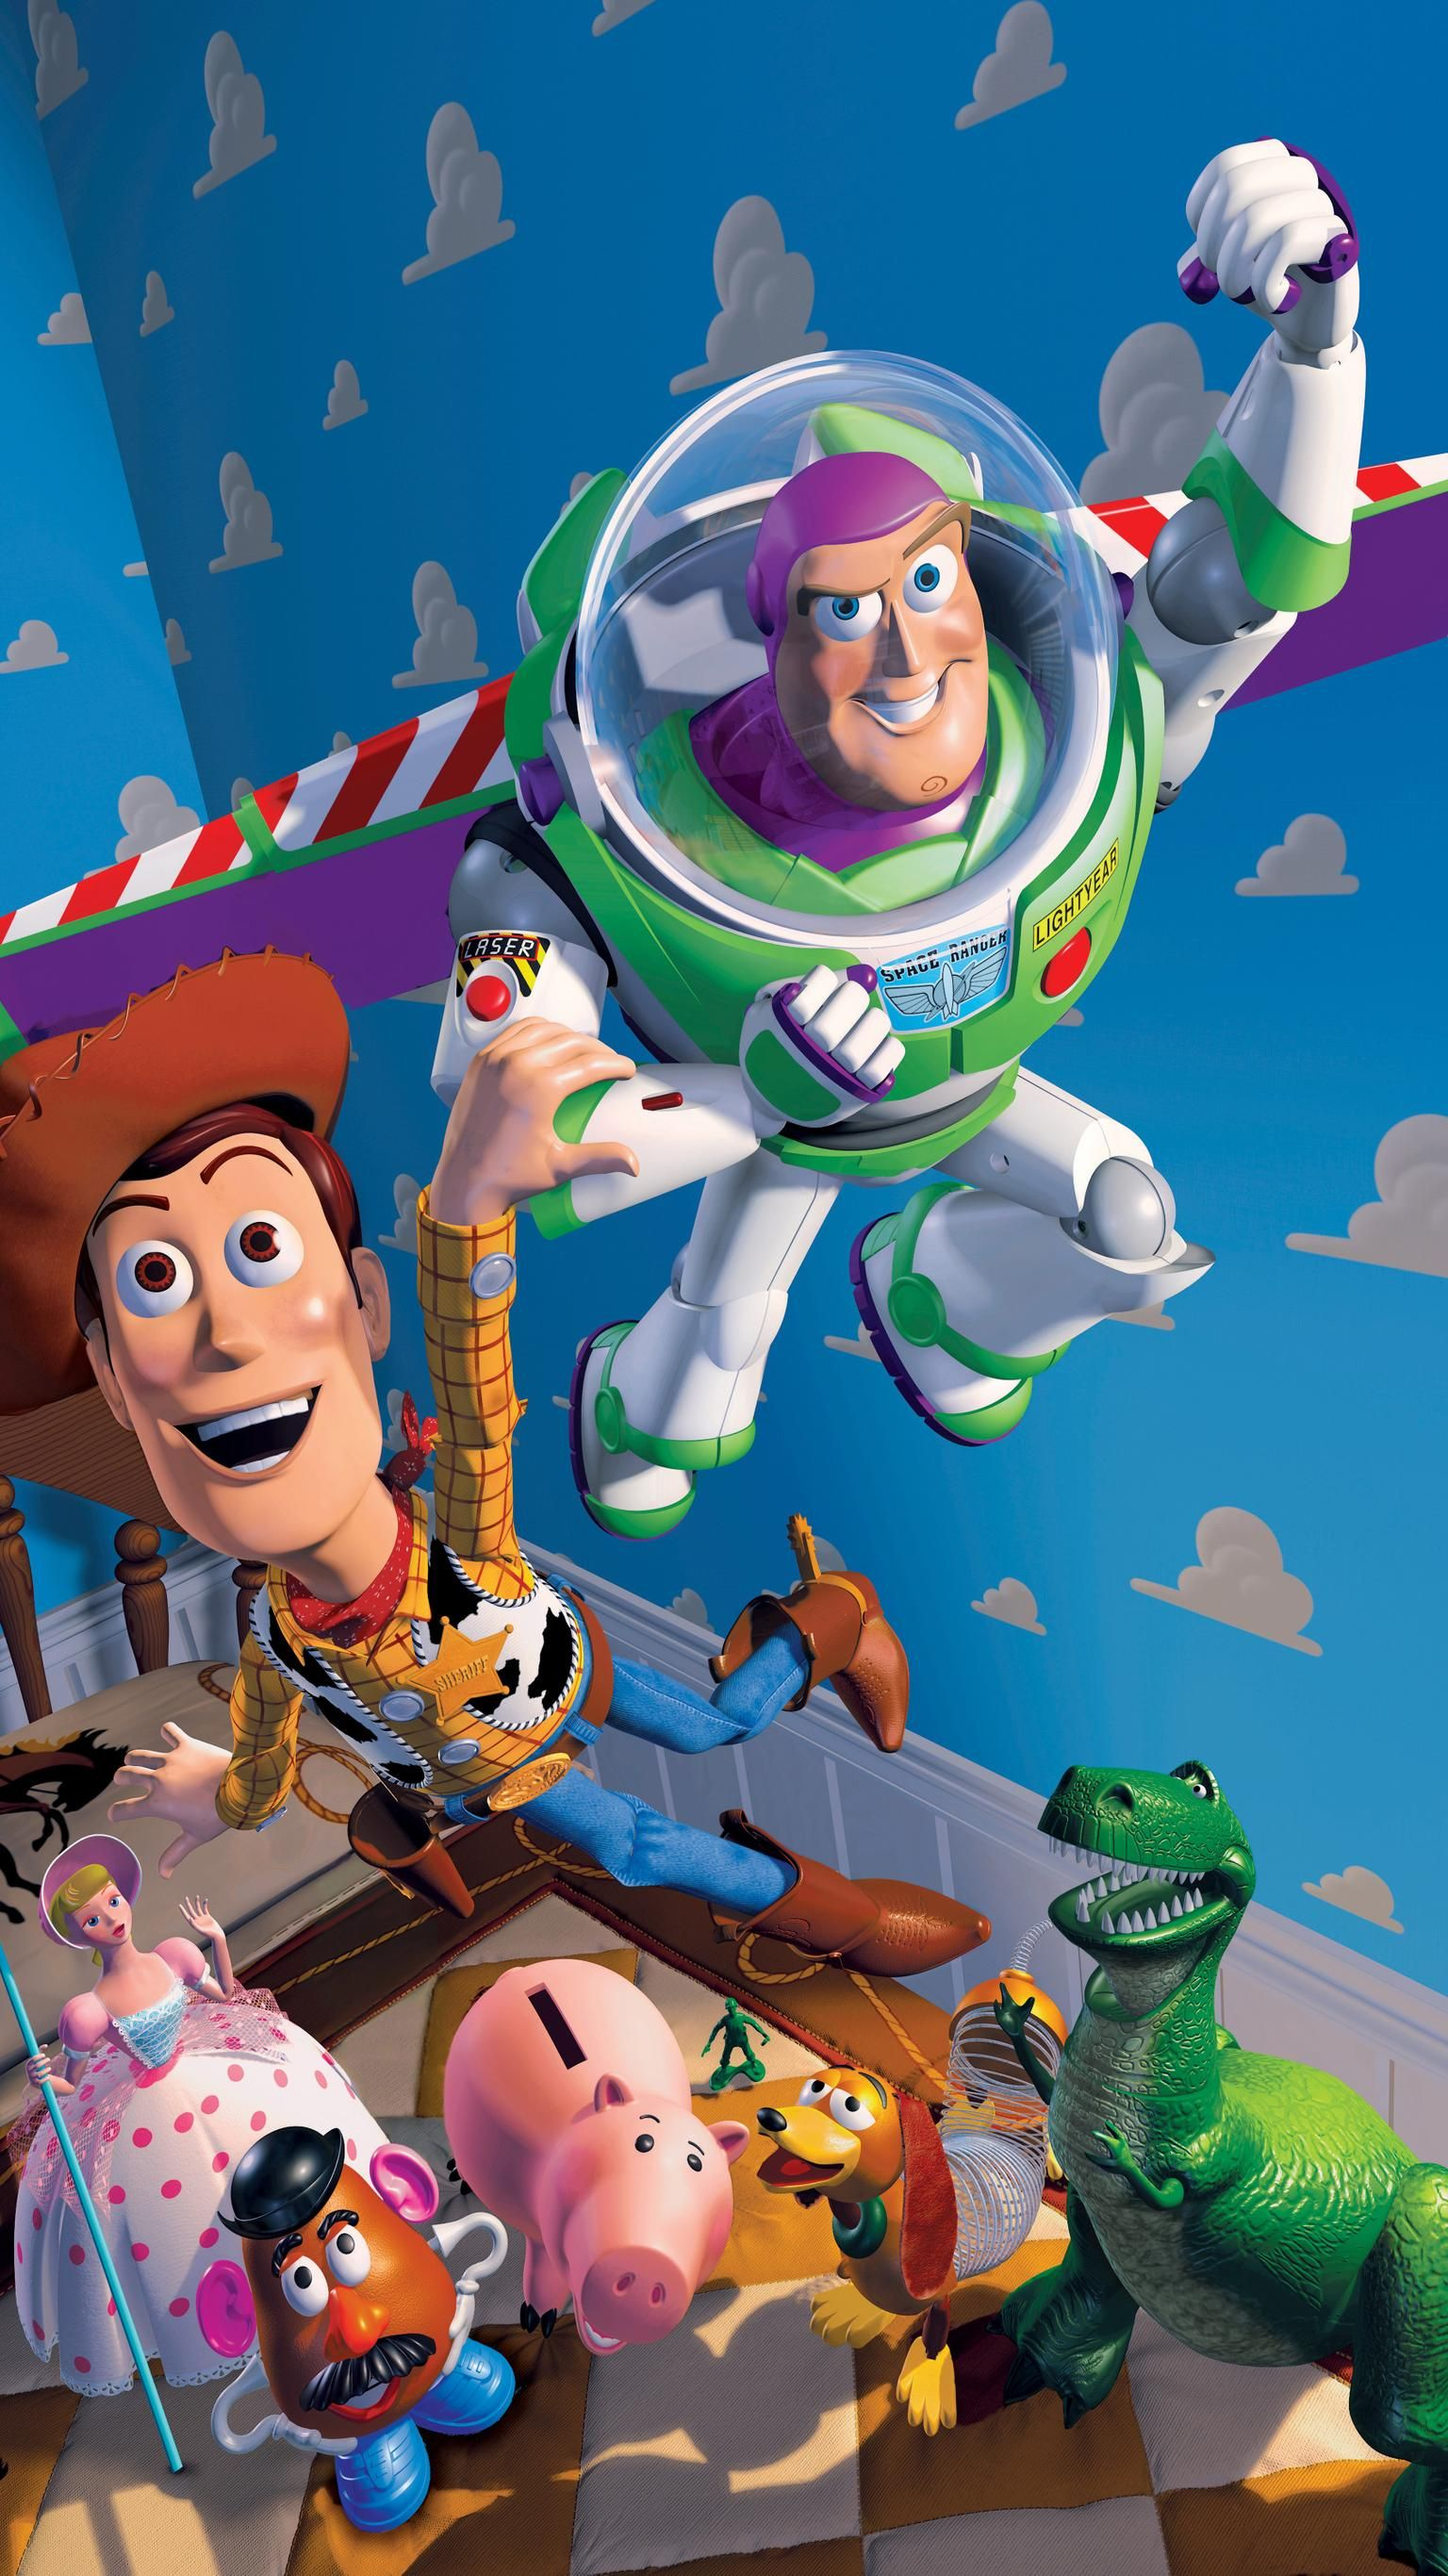 Toy Story (1995) Phone Wallpaper in 2019  2a0a5608405